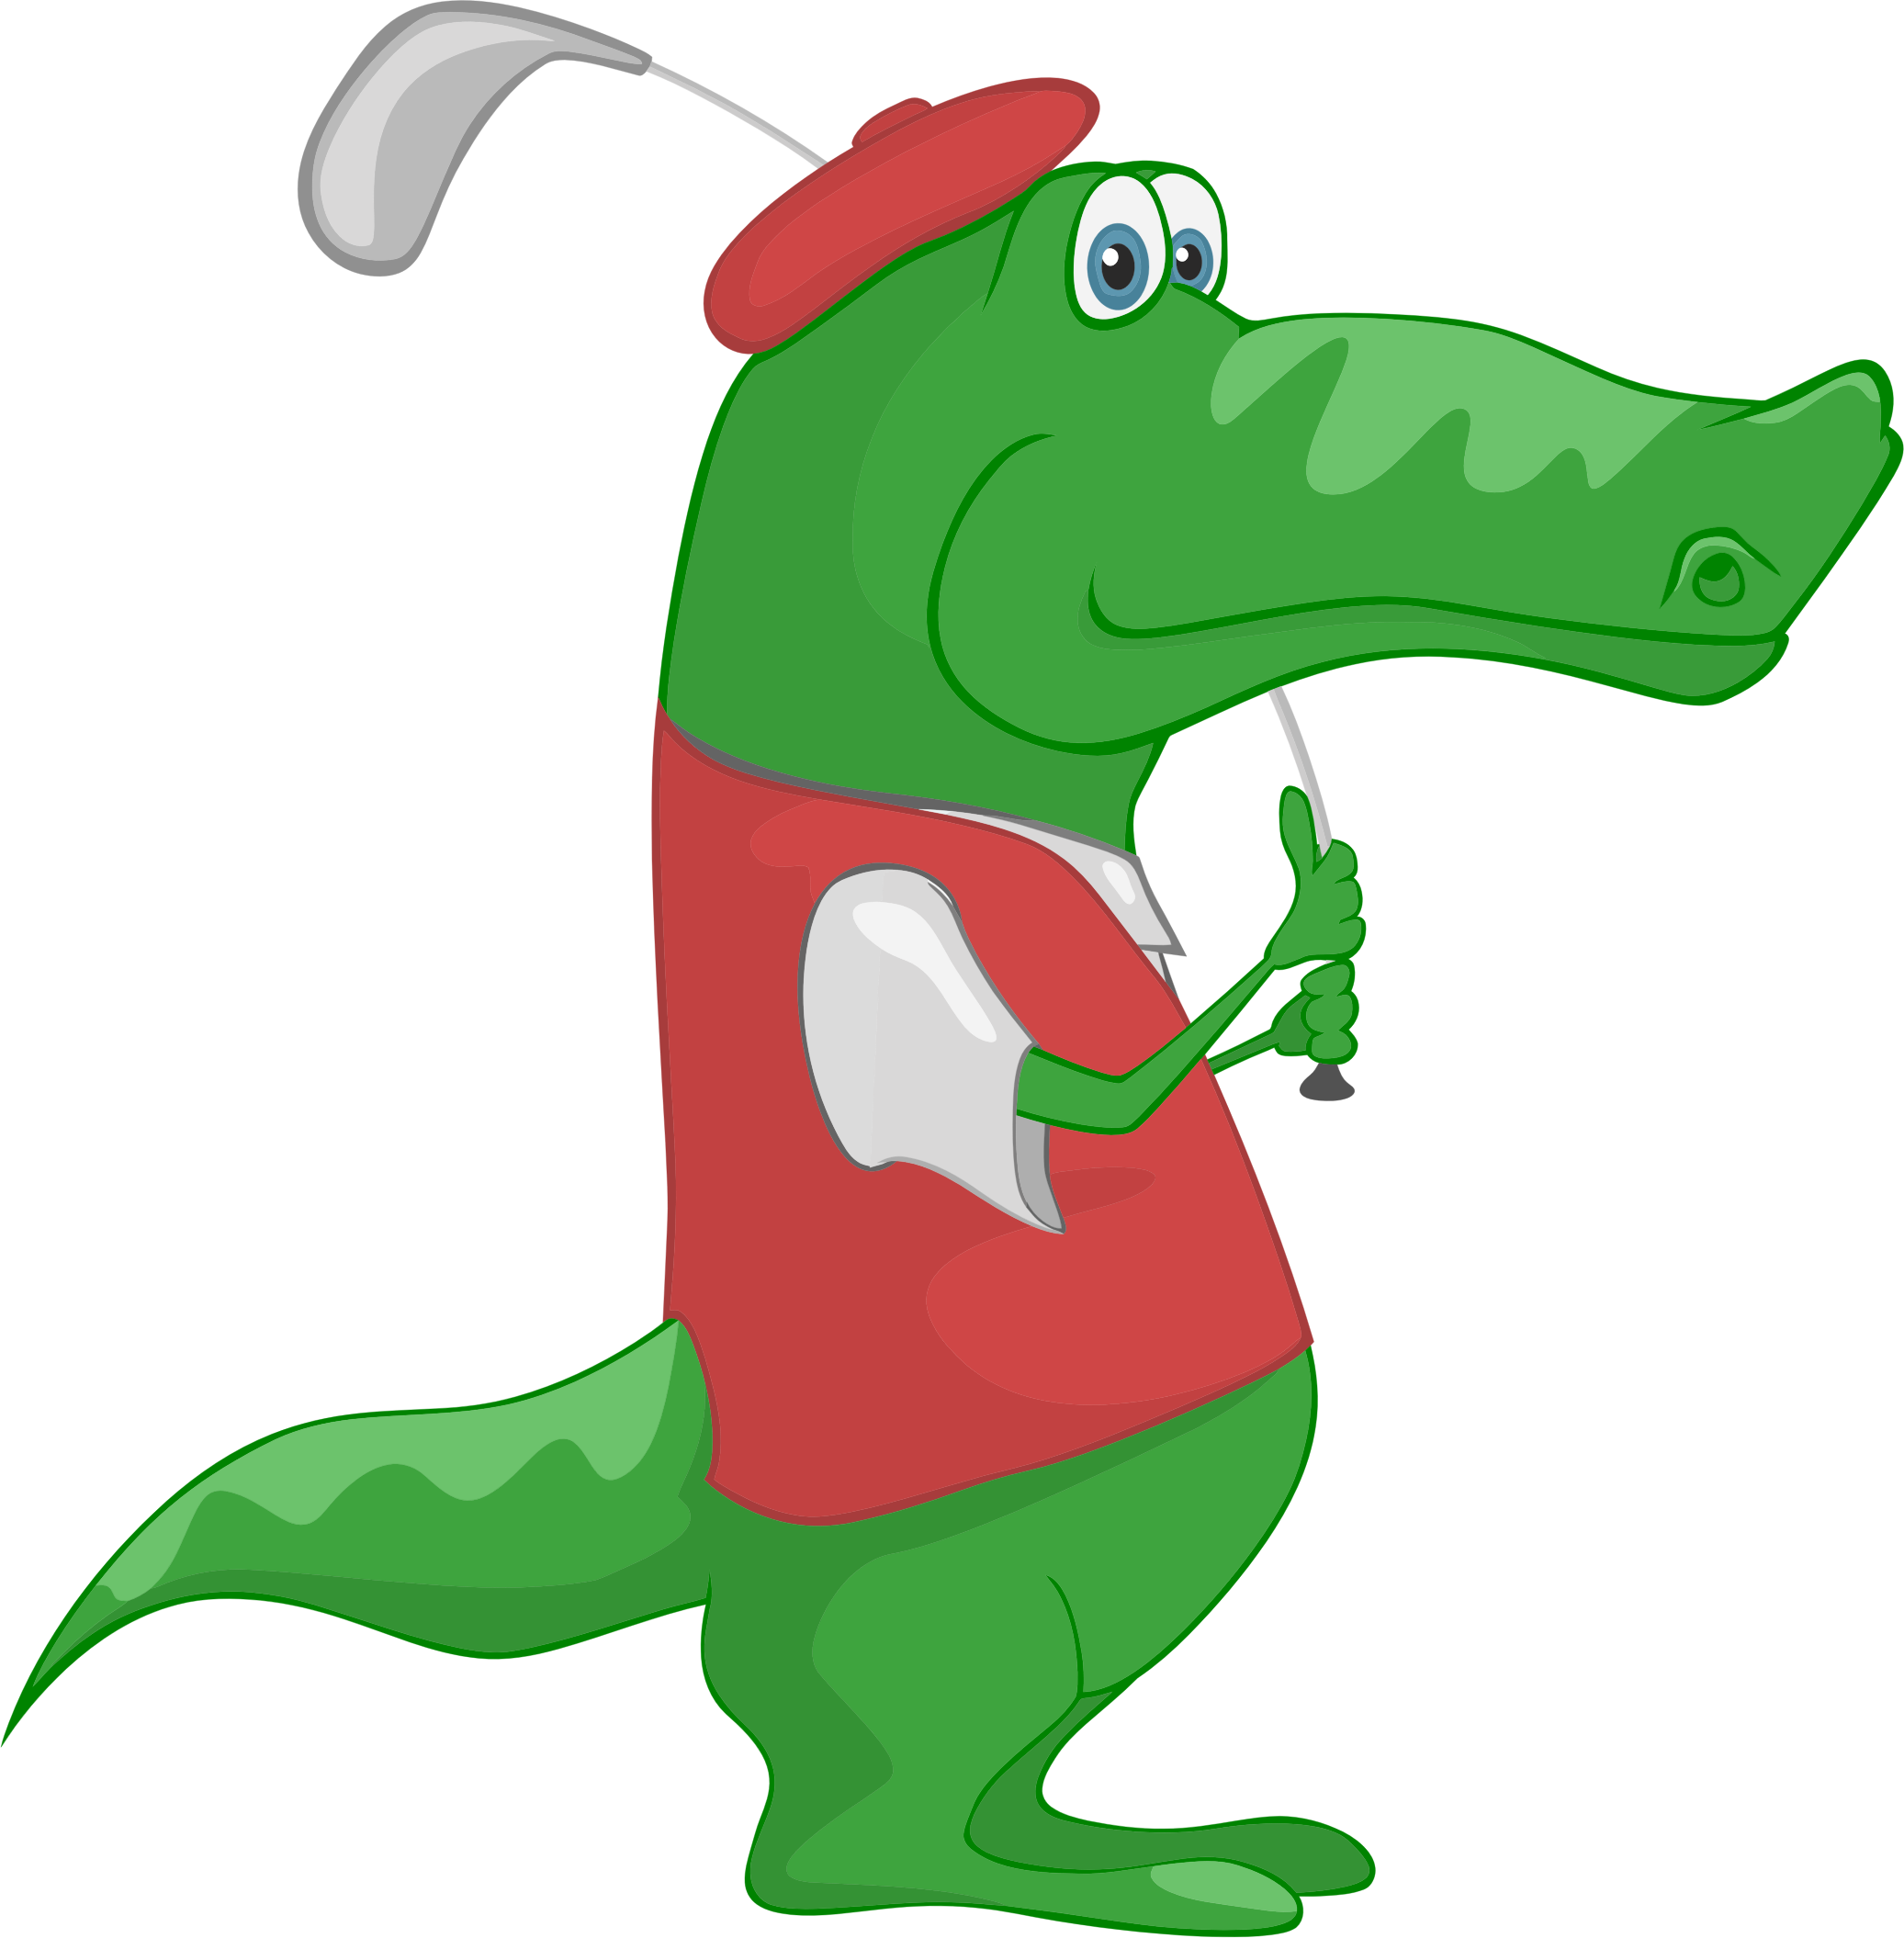 Crocodile Playing Golf by GDJ